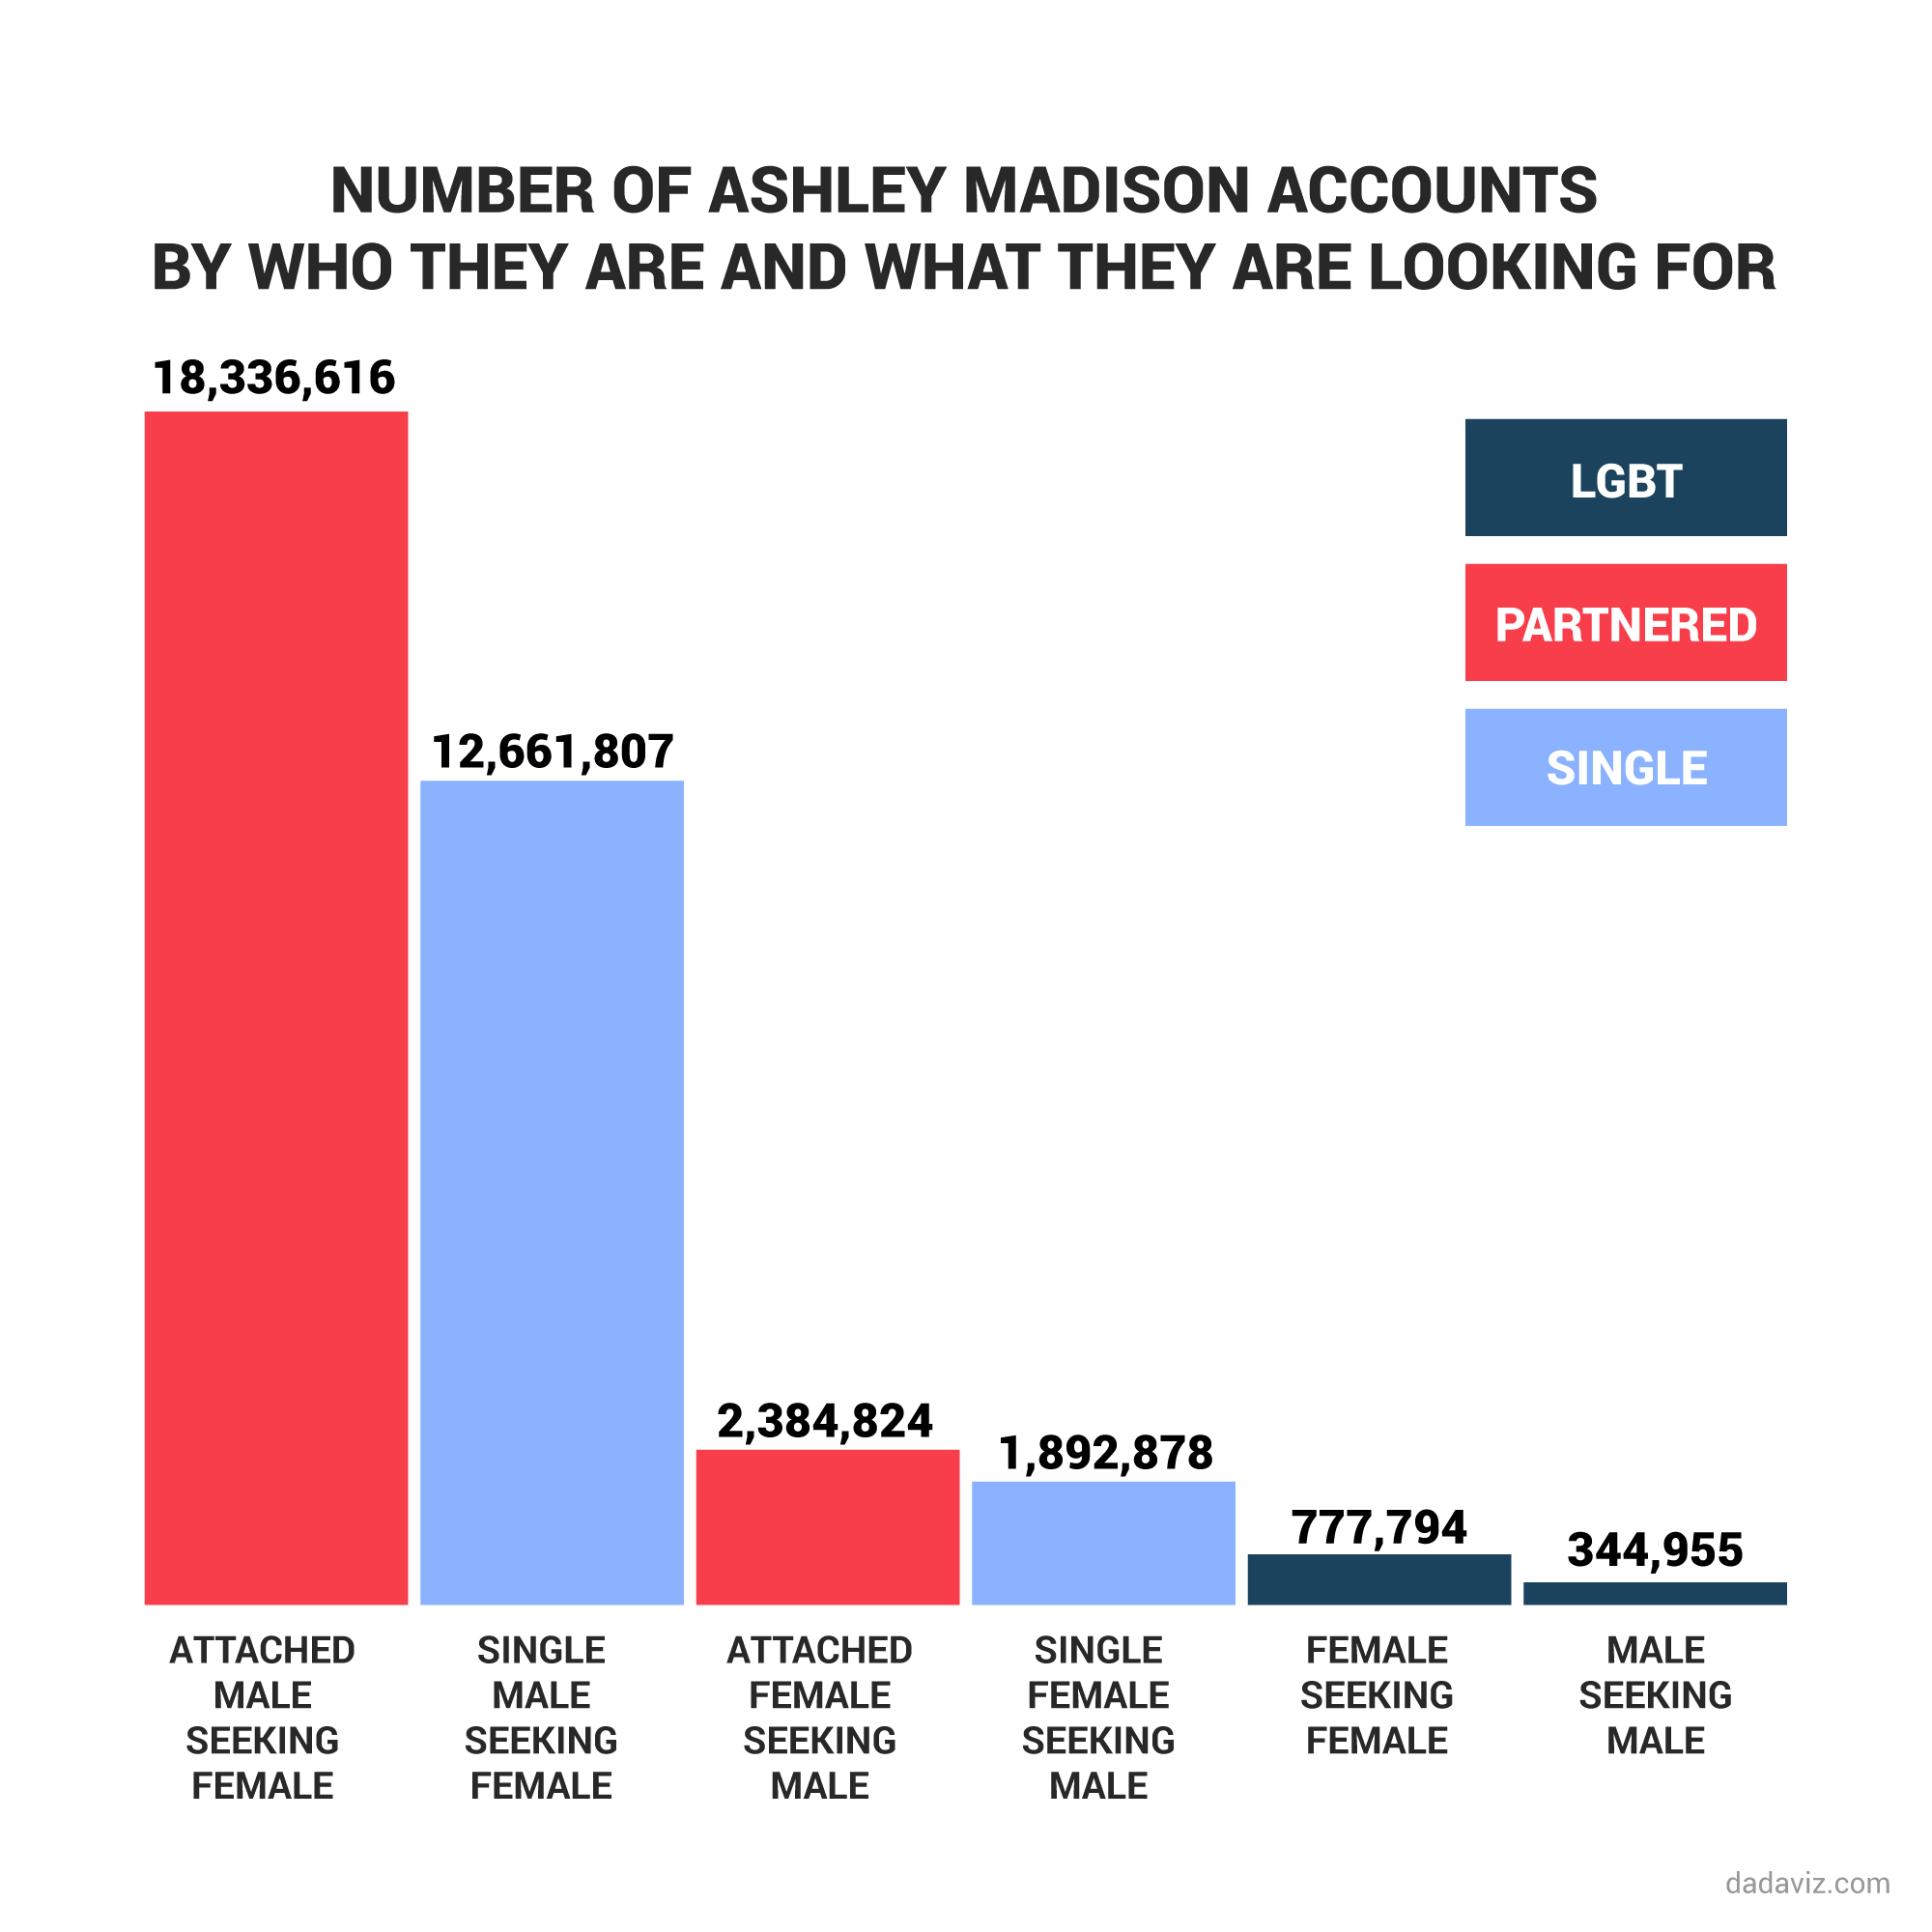 ashley madison hack: 6 charts that show who uses the infidelity